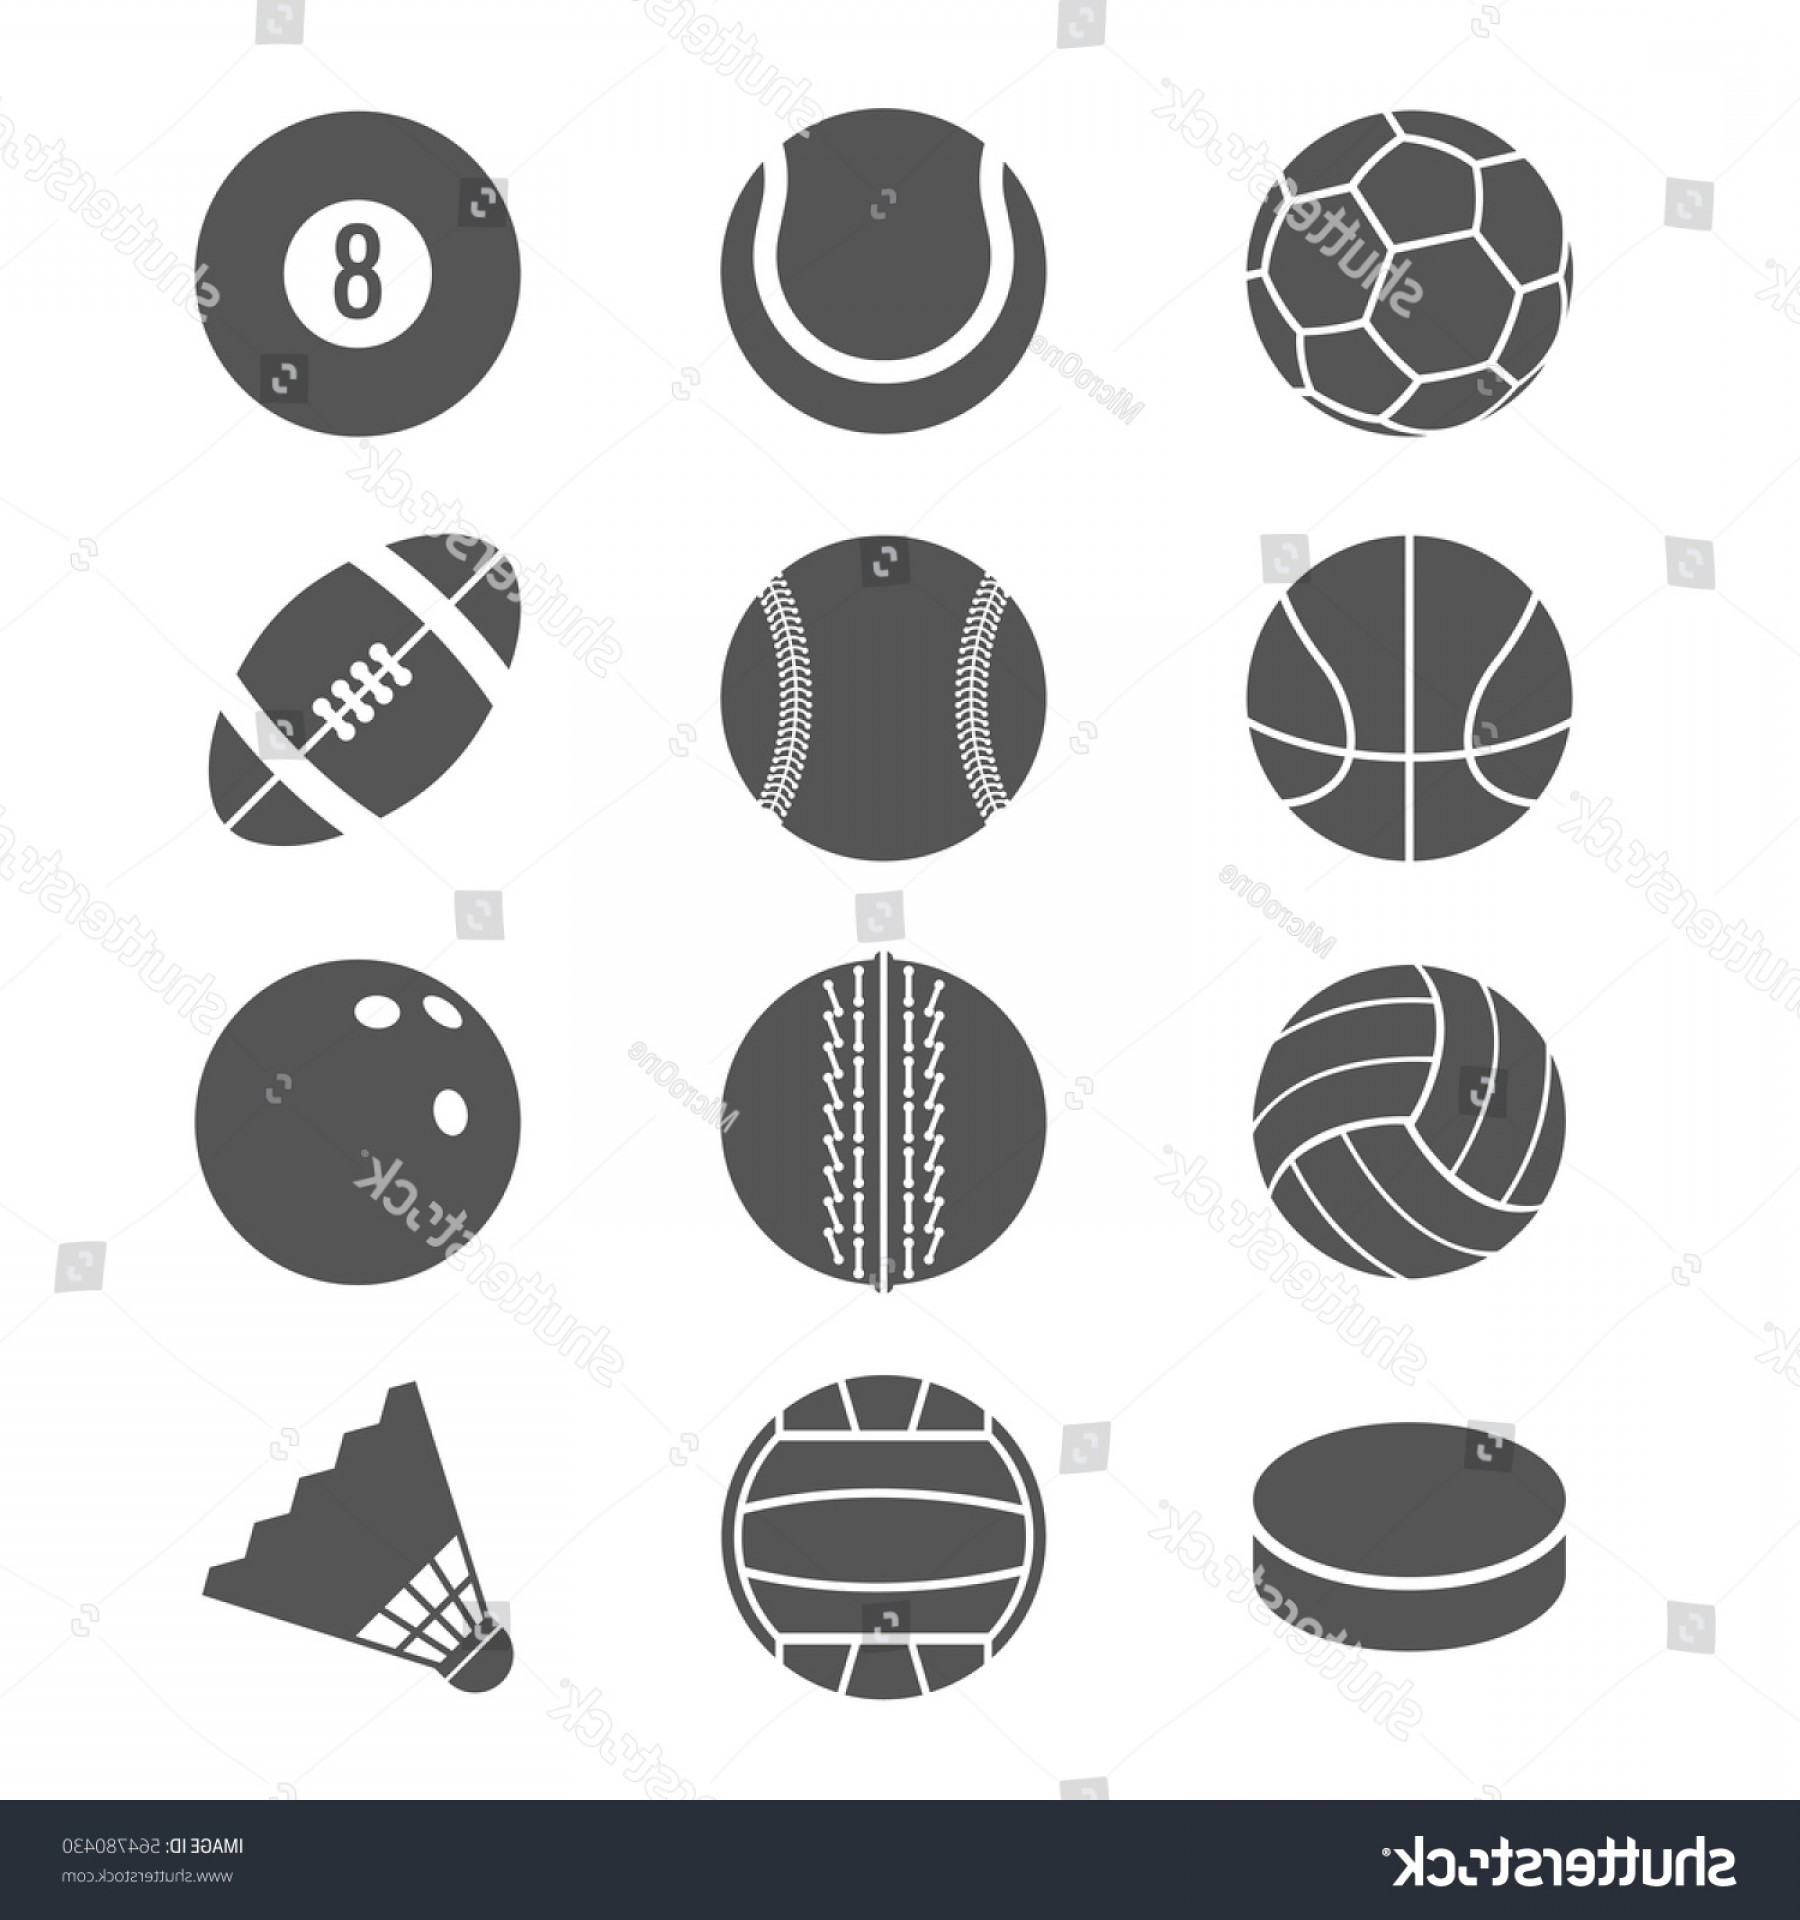 Basketball Seams Vector Clip Art: Sports Balls Football Basketball Tennis Vector